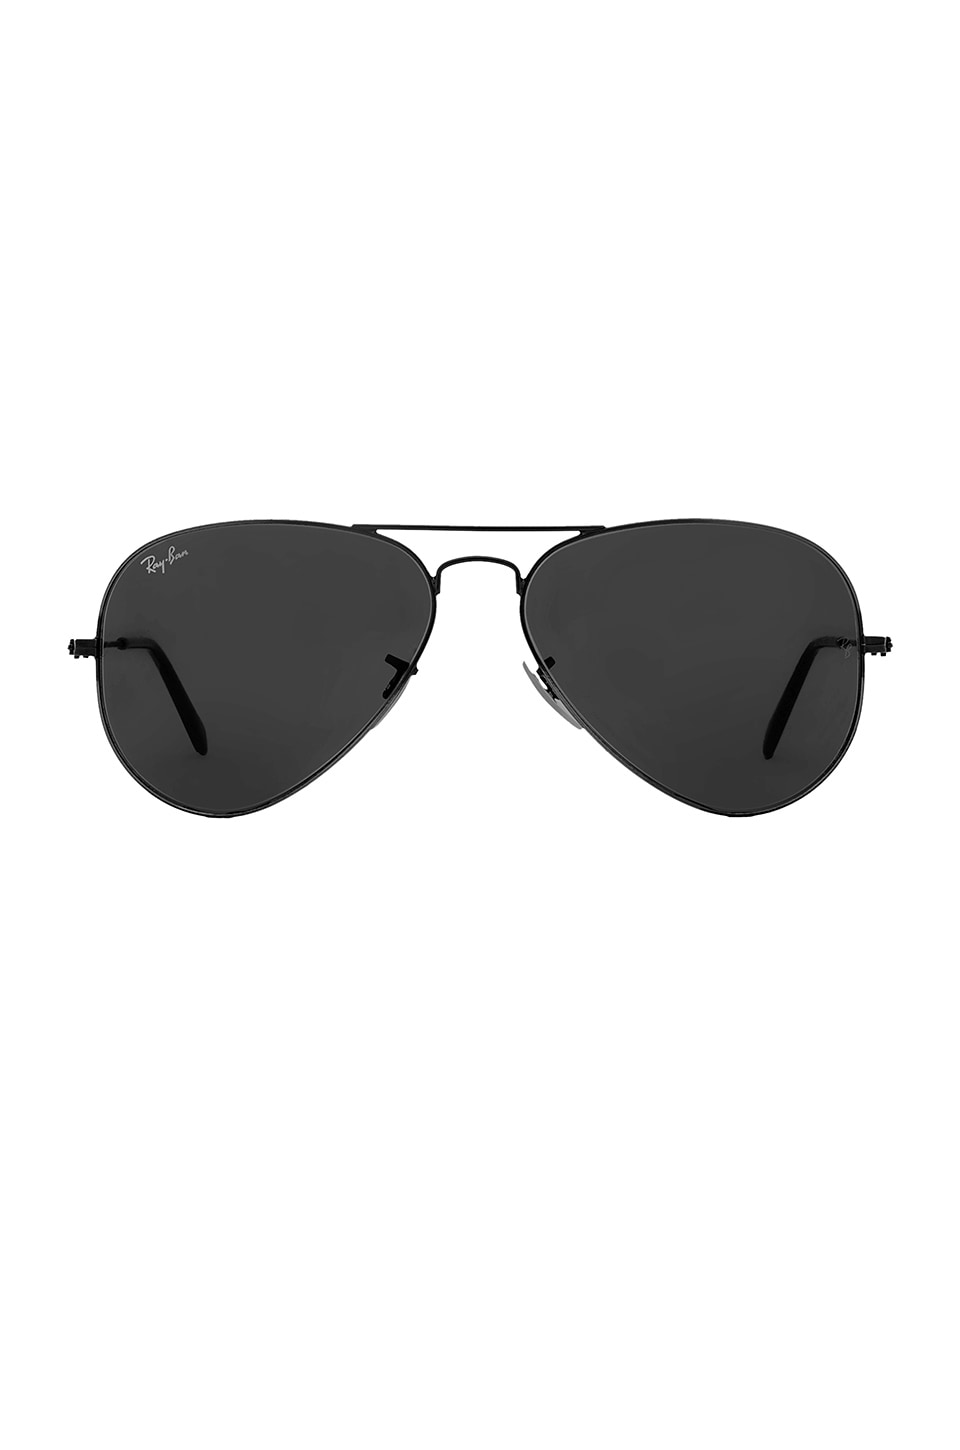 Ray-Ban Aviator Classic in Black